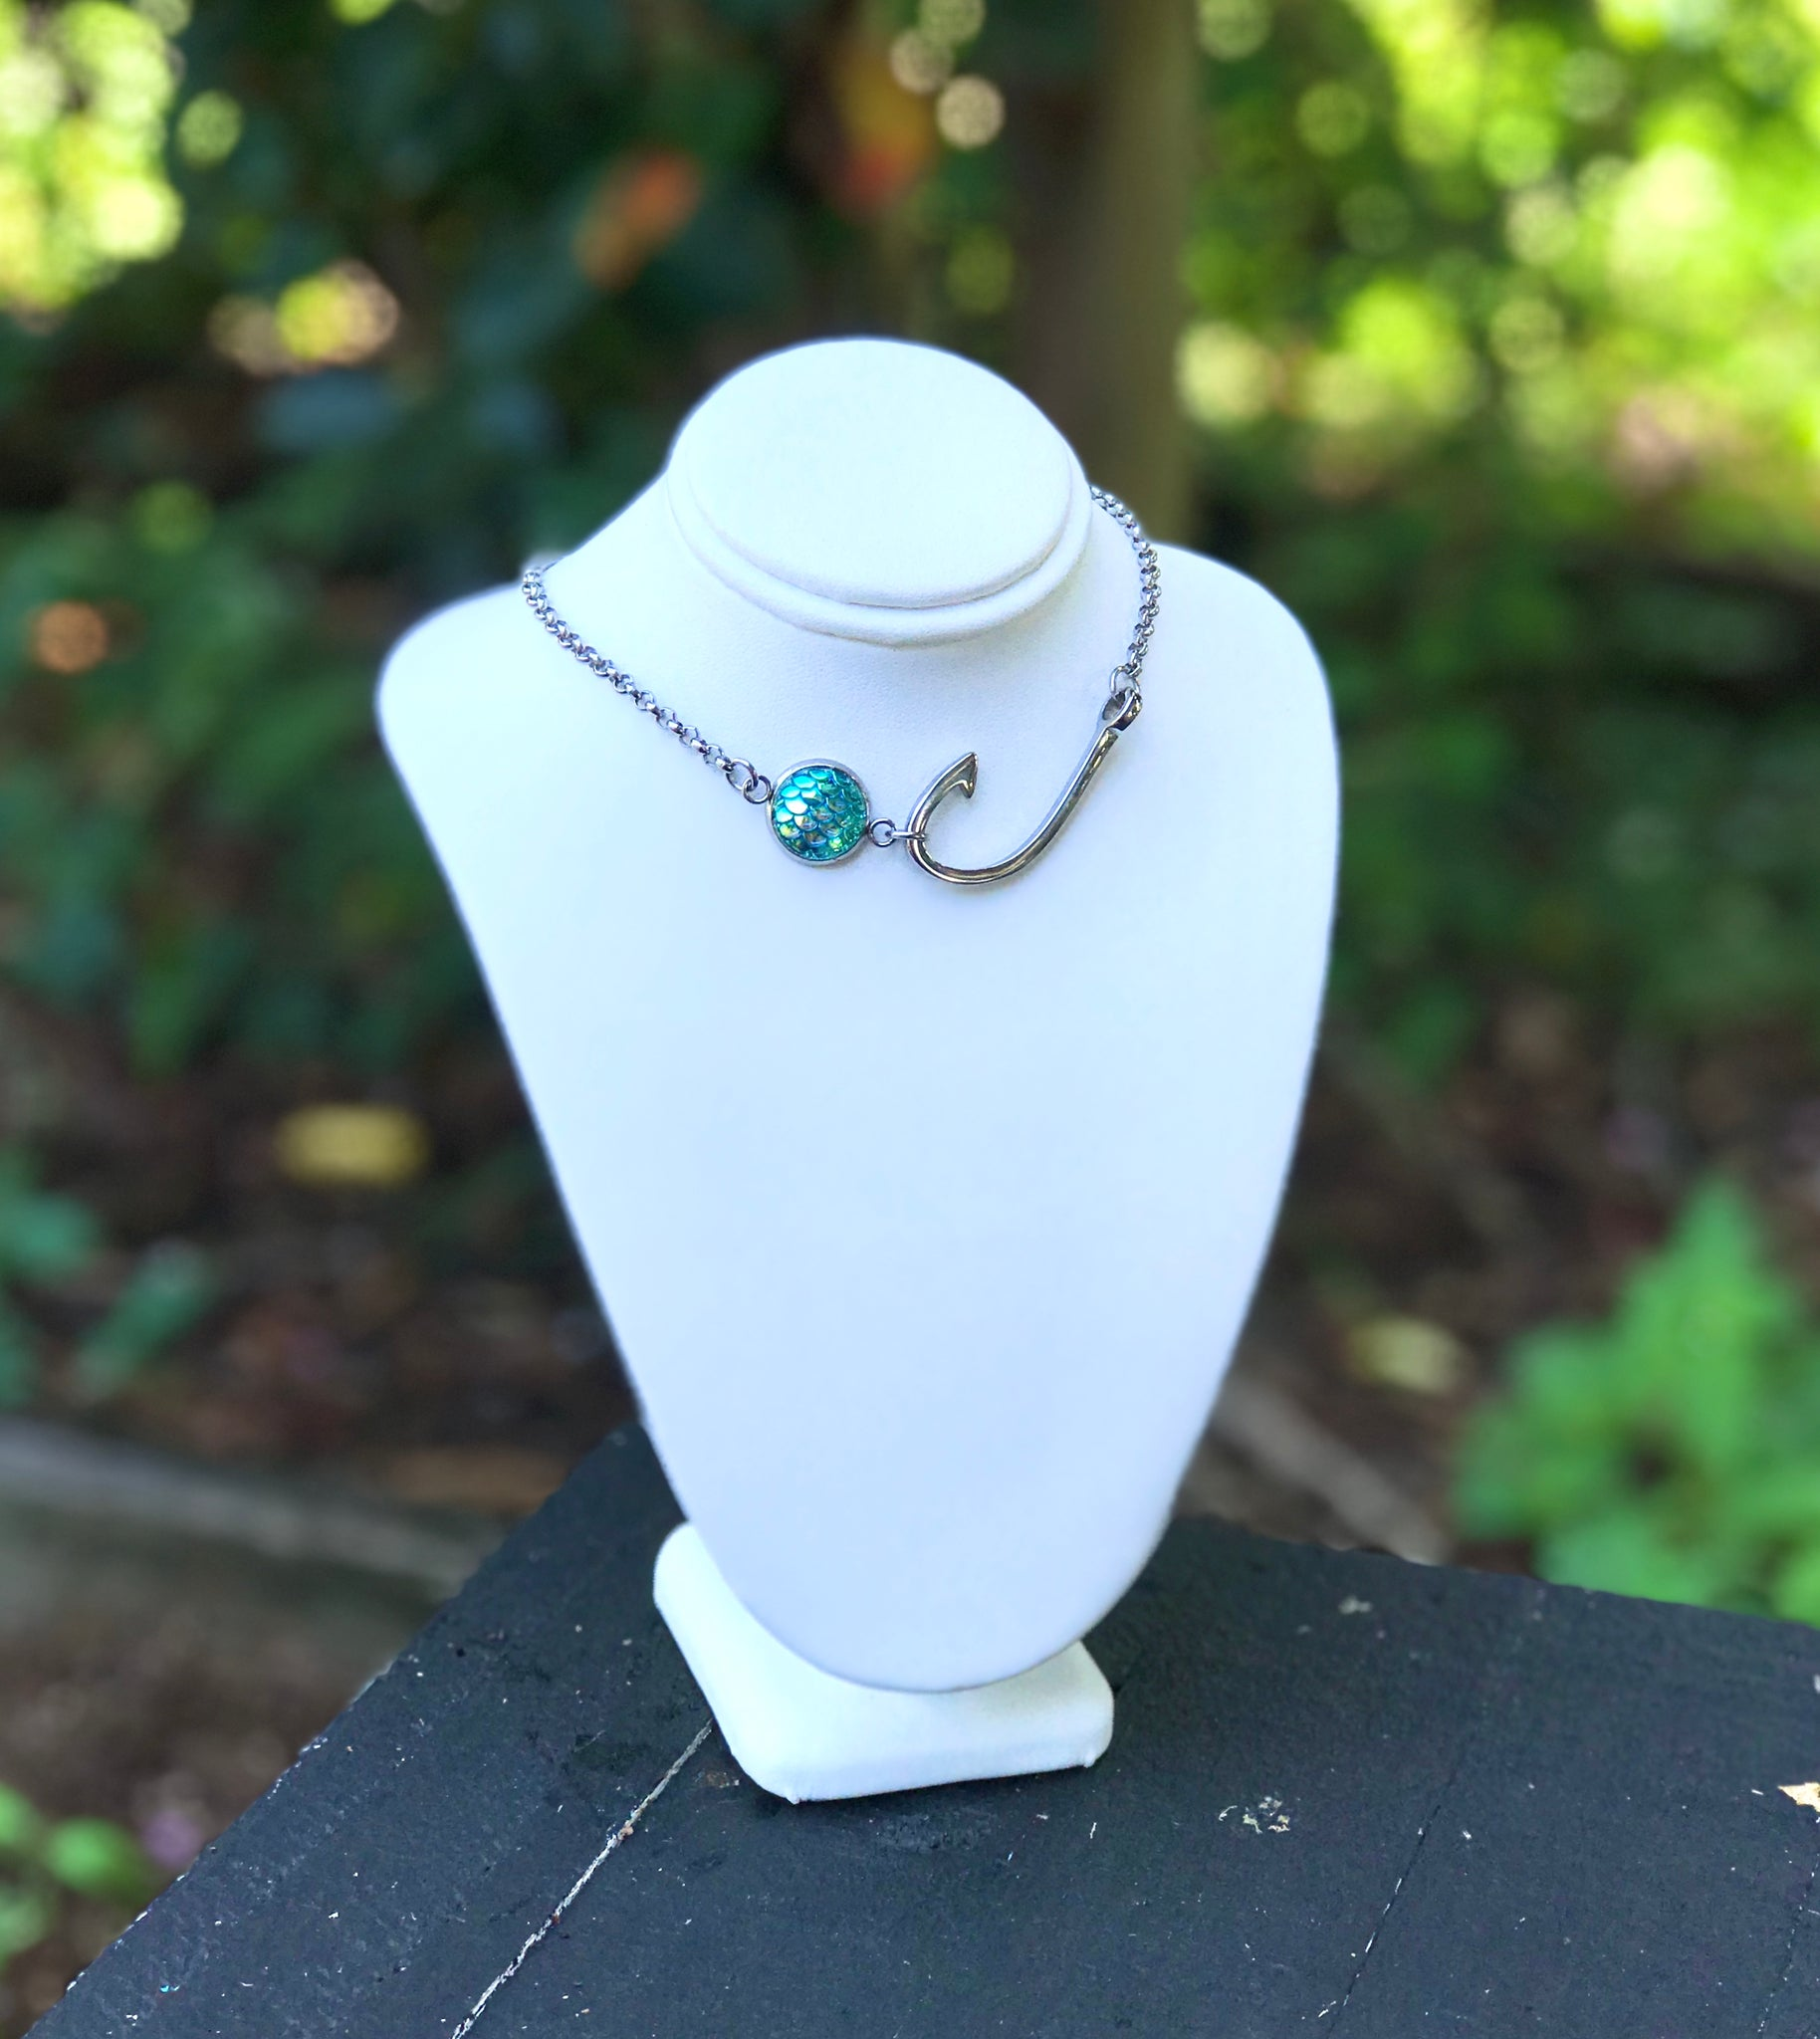 NC109-H - Choker Style 1 Mermaid Scale Necklace Real Mermaid